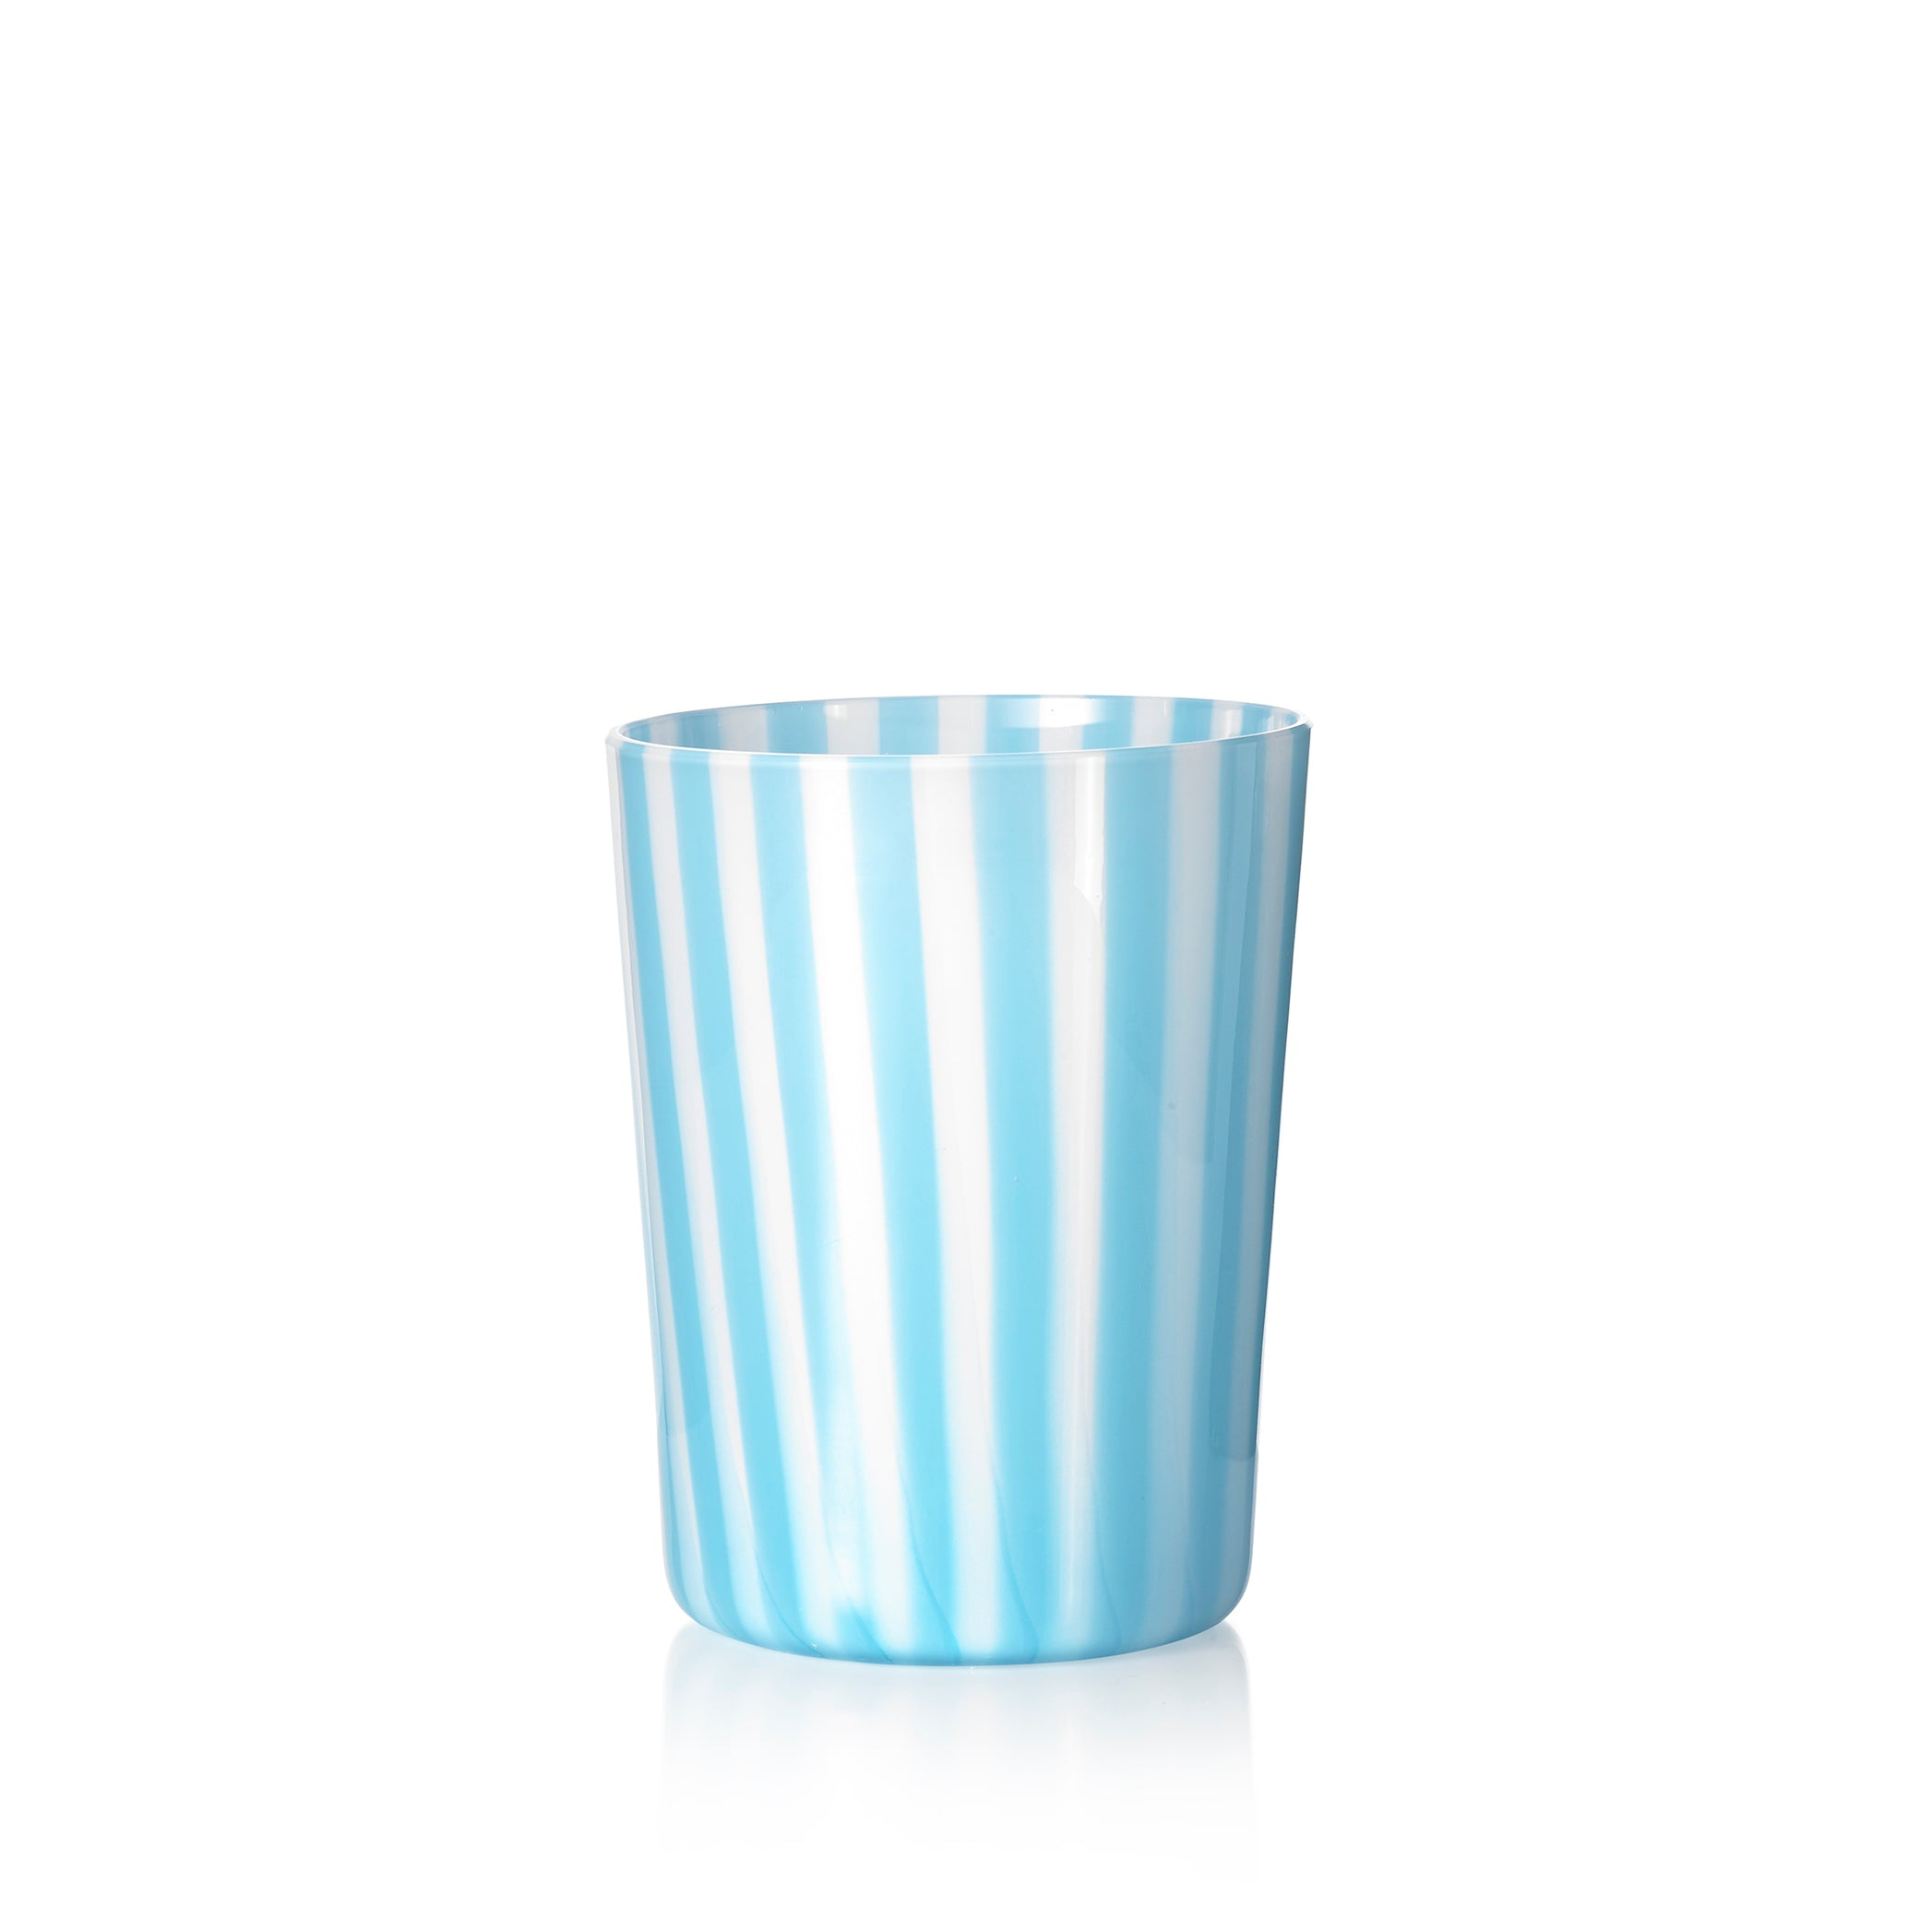 Set of Six Handblown 'Pastelli' Glass Tumblers, Designed by LPWK in Turquoise and White Stripe